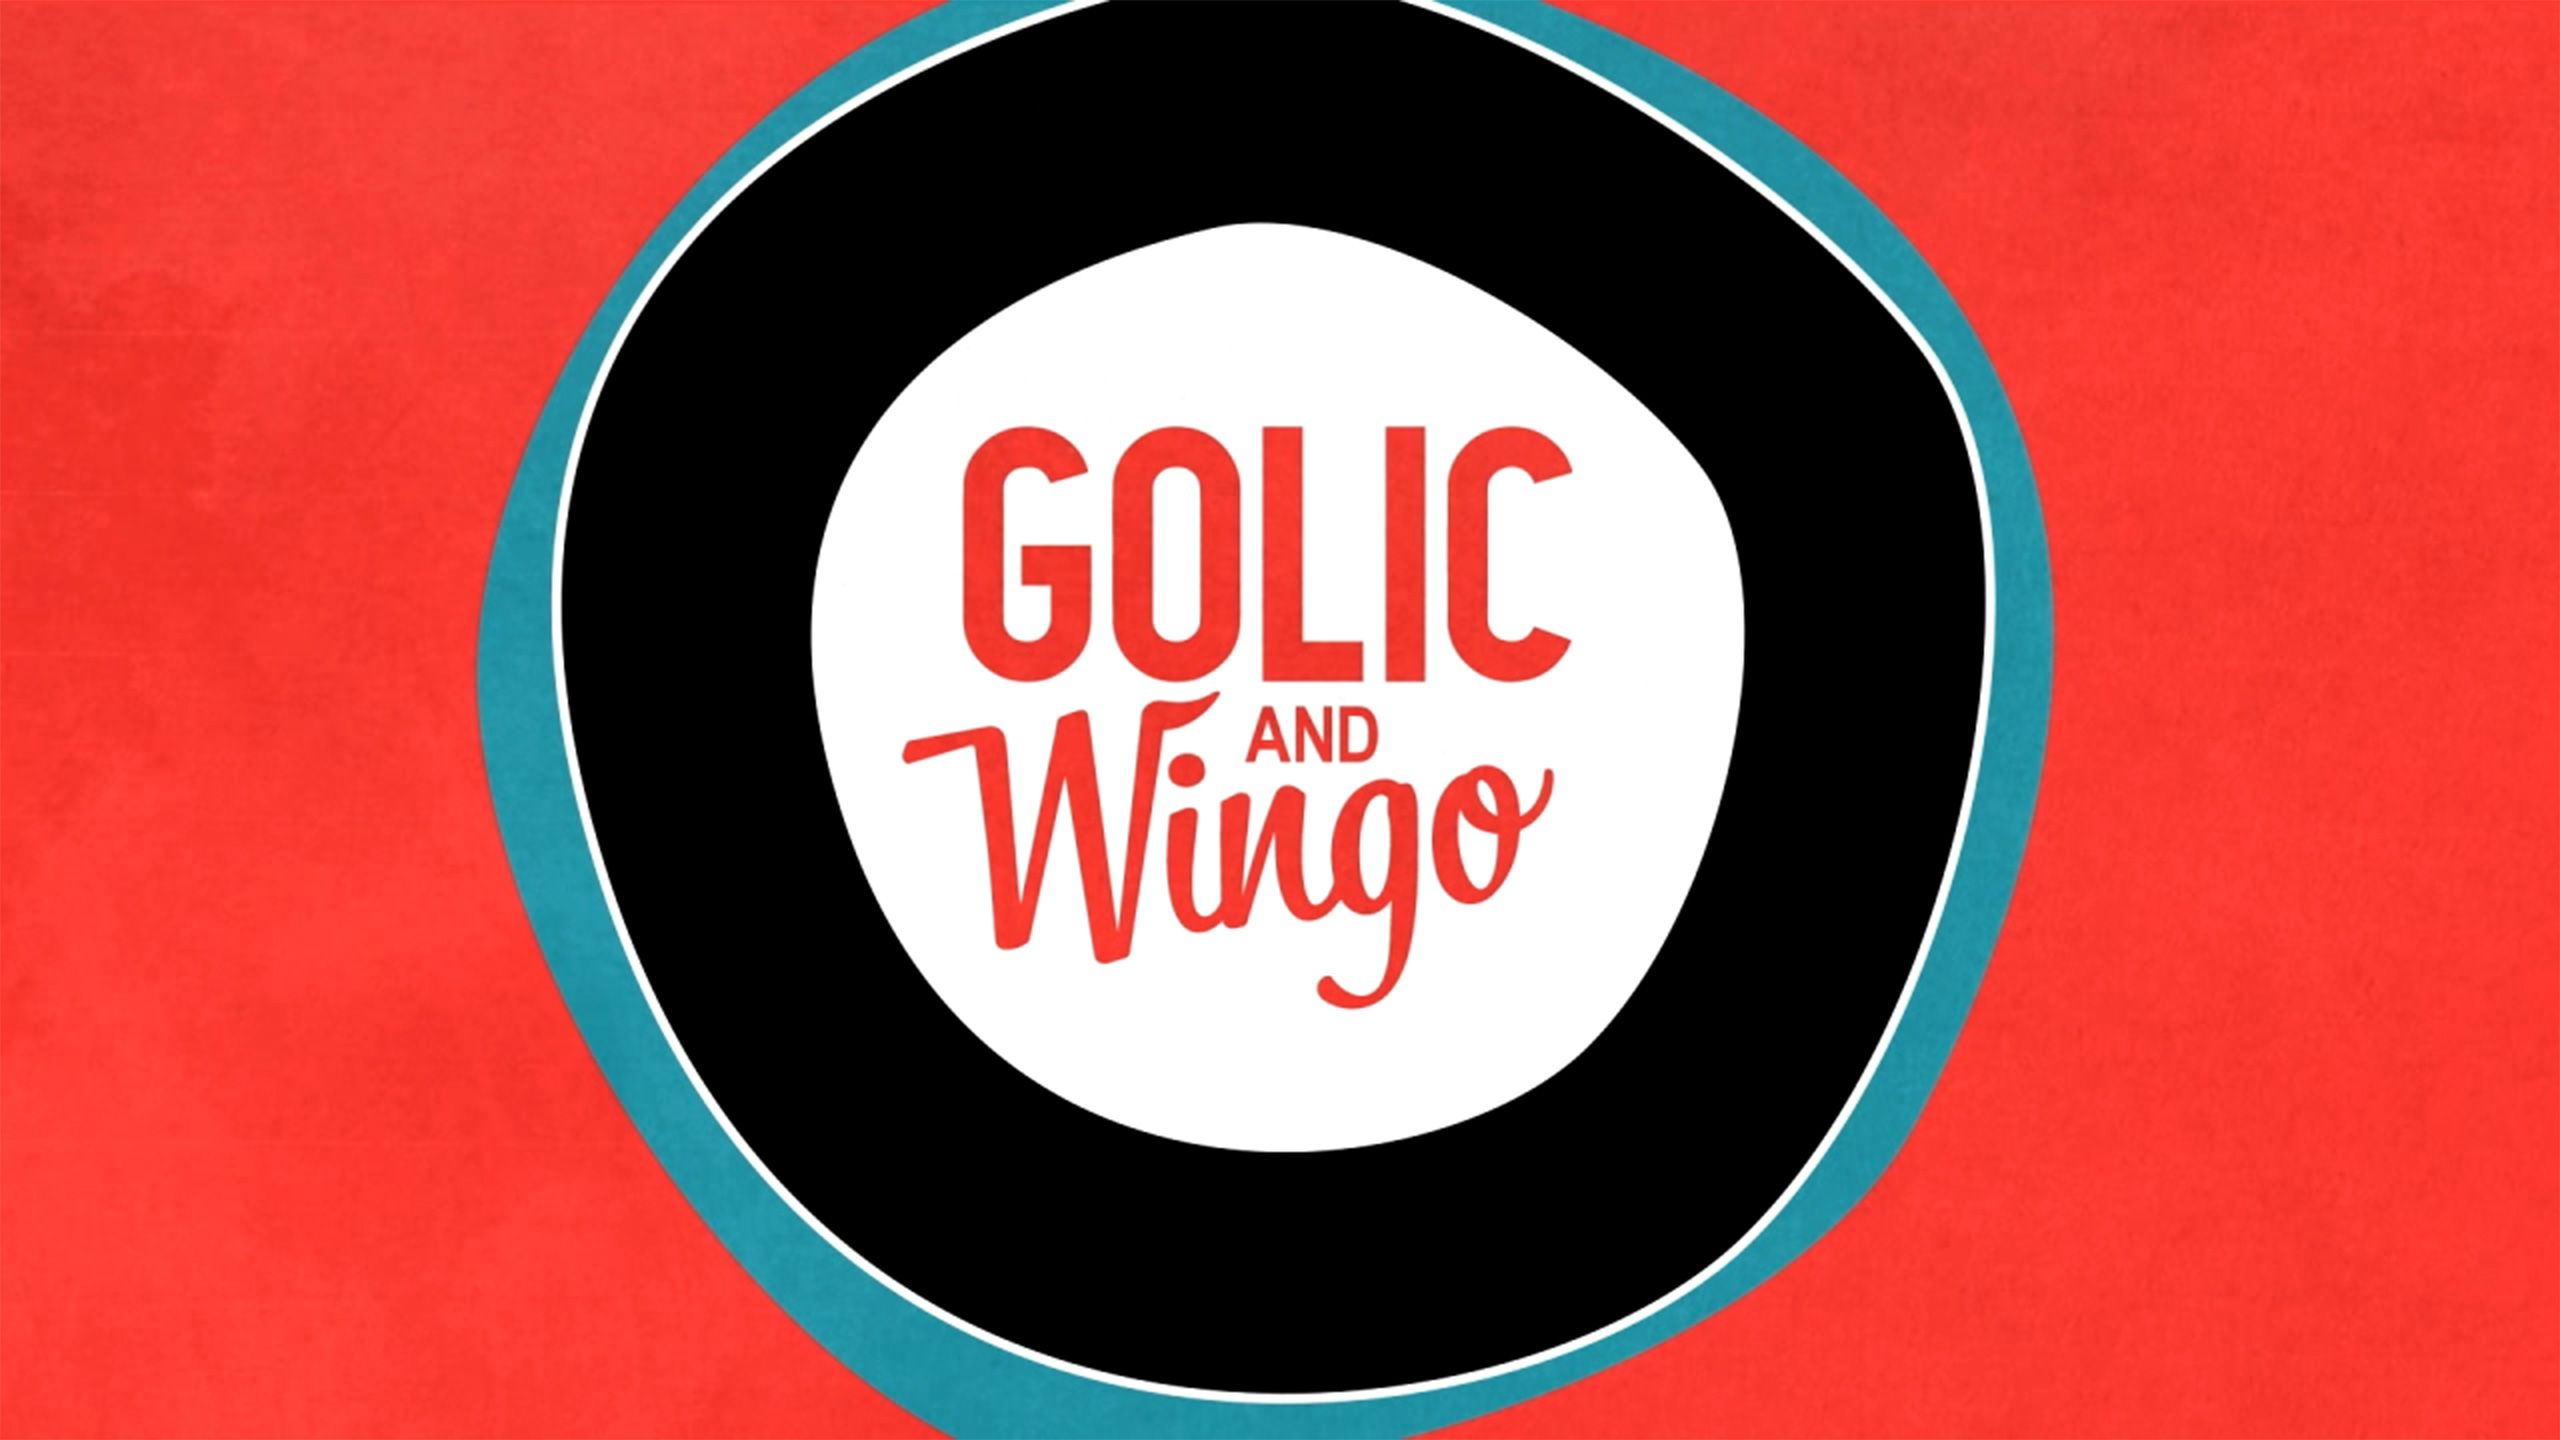 Tue, 1/23 - Golic and Wingo